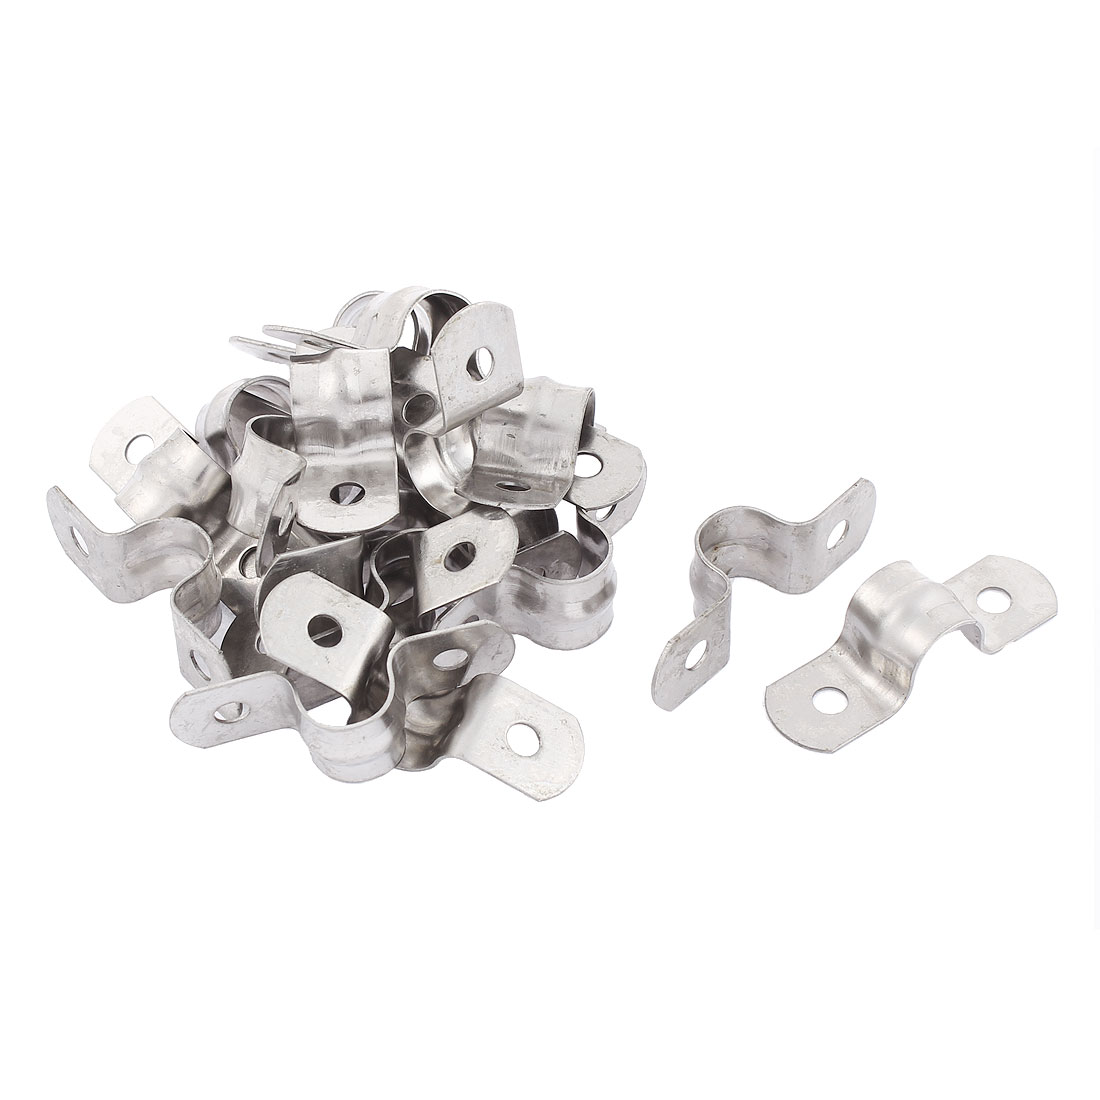 10mm Arch High Two Hole Stainless Steel Pipe Strap Clips Fastener Holder 20Pcs